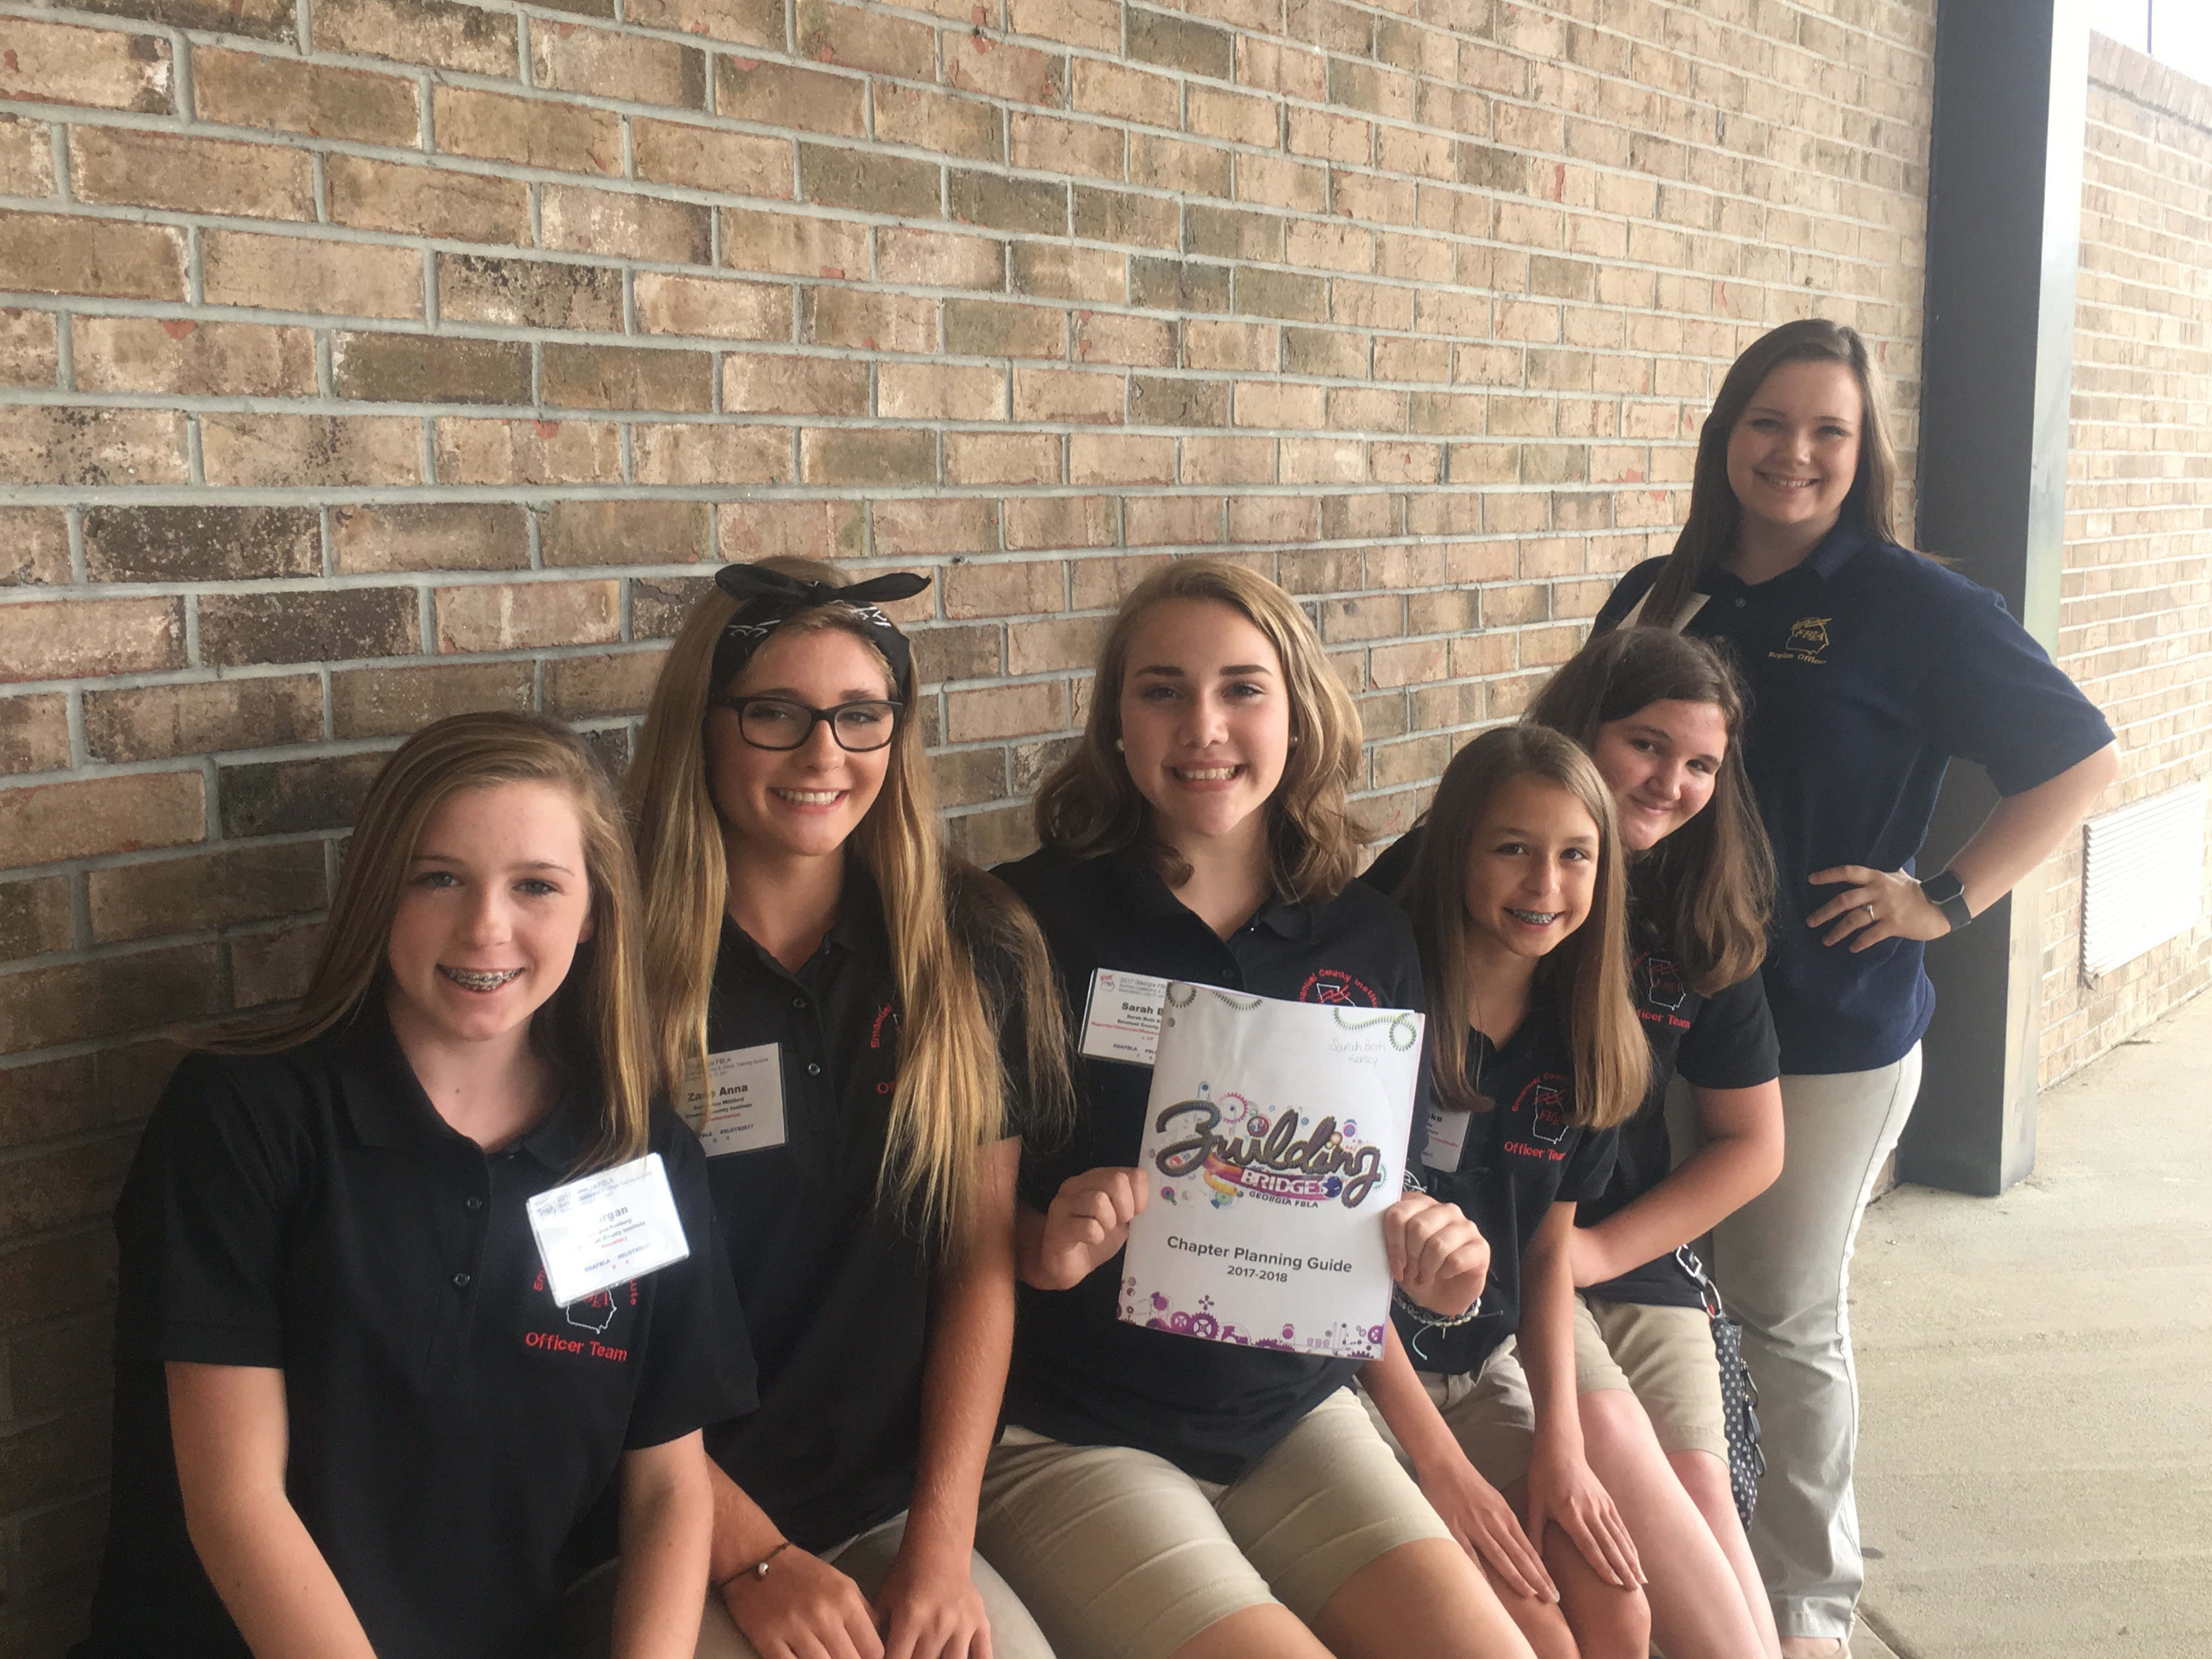 Pictured (L to R) Morgan Rehberg, Zade Anna Williford, Sarah Beth Kersey, Kati-Brooke Hooks, Breana Librizzi, and MacKayla Oglesby.  Not pictured: Calissa Mason, Kendra Pierce, Caroline Kraus, and Jenna Hinson.